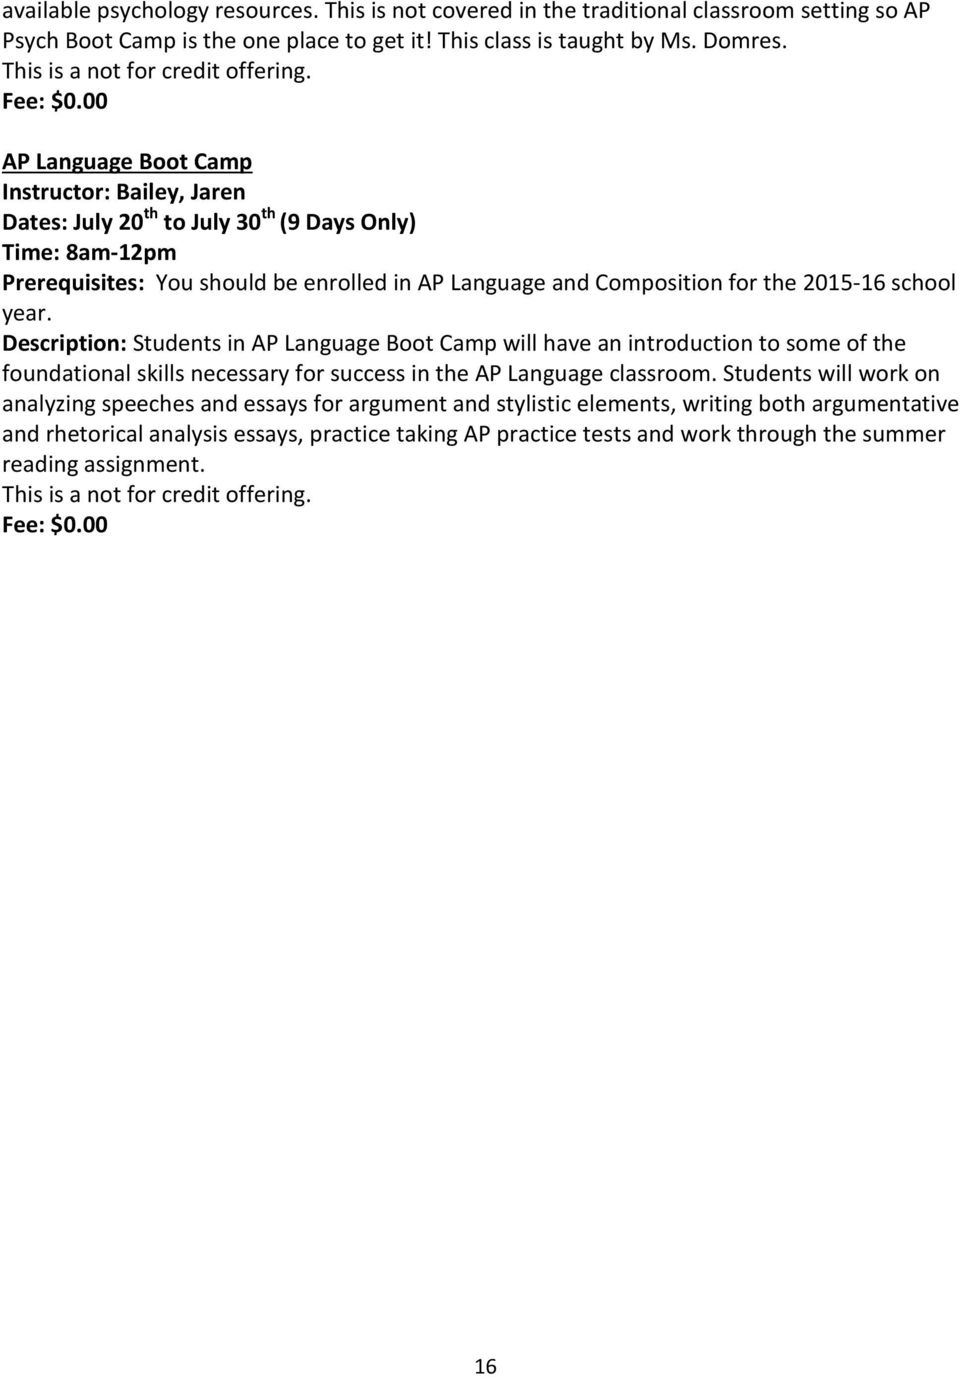 00 AP Language Boot Camp Instructor: Bailey, Jaren Dates: July 20 th to July 30 th (9 Days Only) Time: 8am-12pm Prerequisites: You should be enrolled in AP Language and Composition for the 2015-16